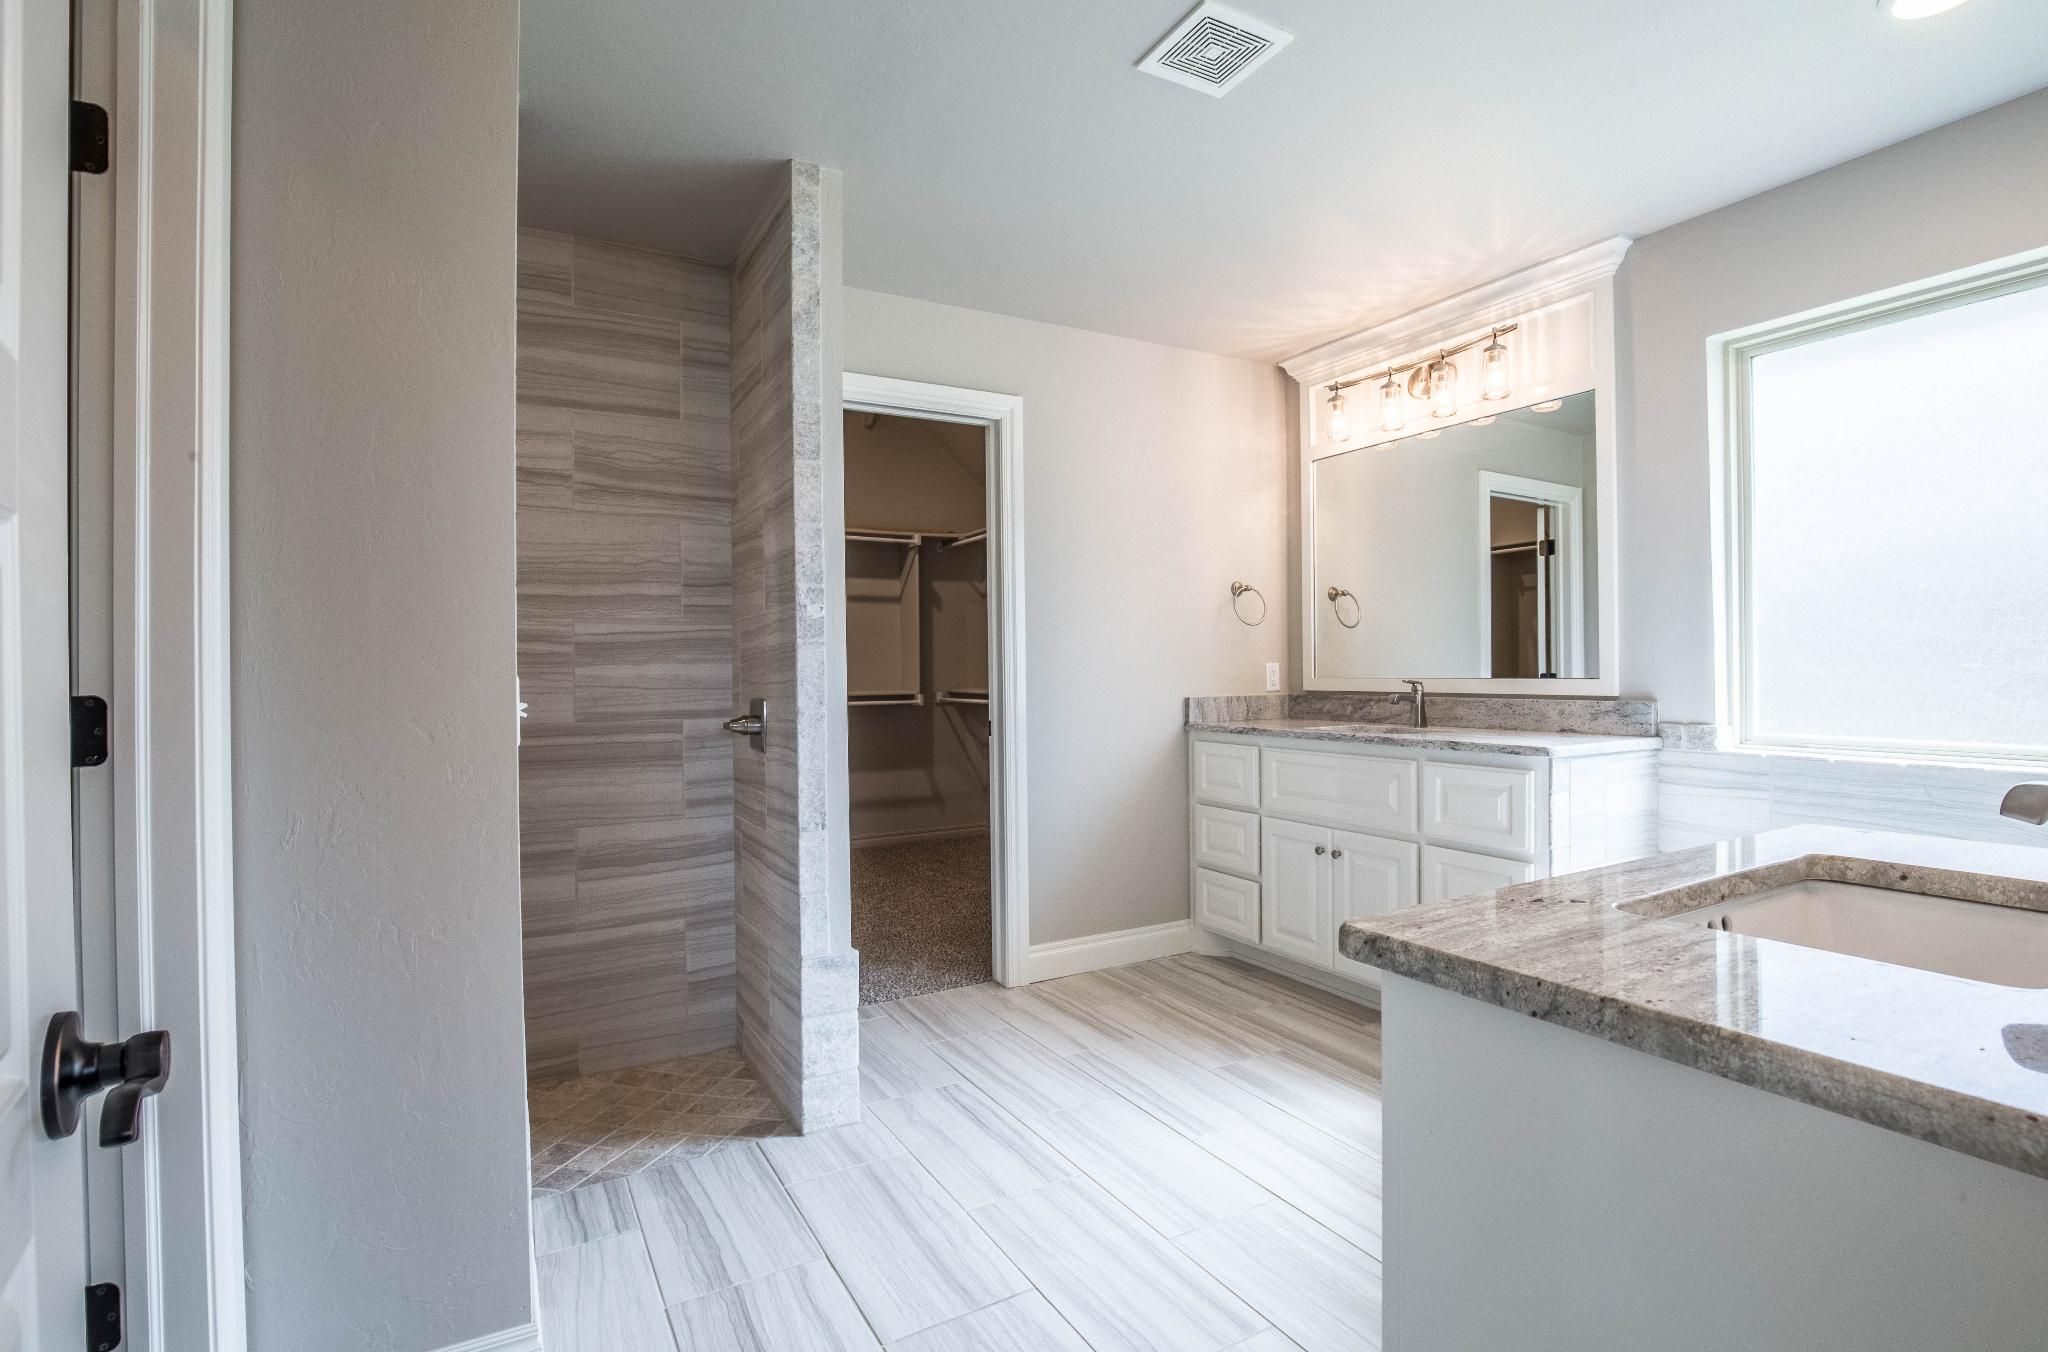 Photo gallery homes by taber new home communities